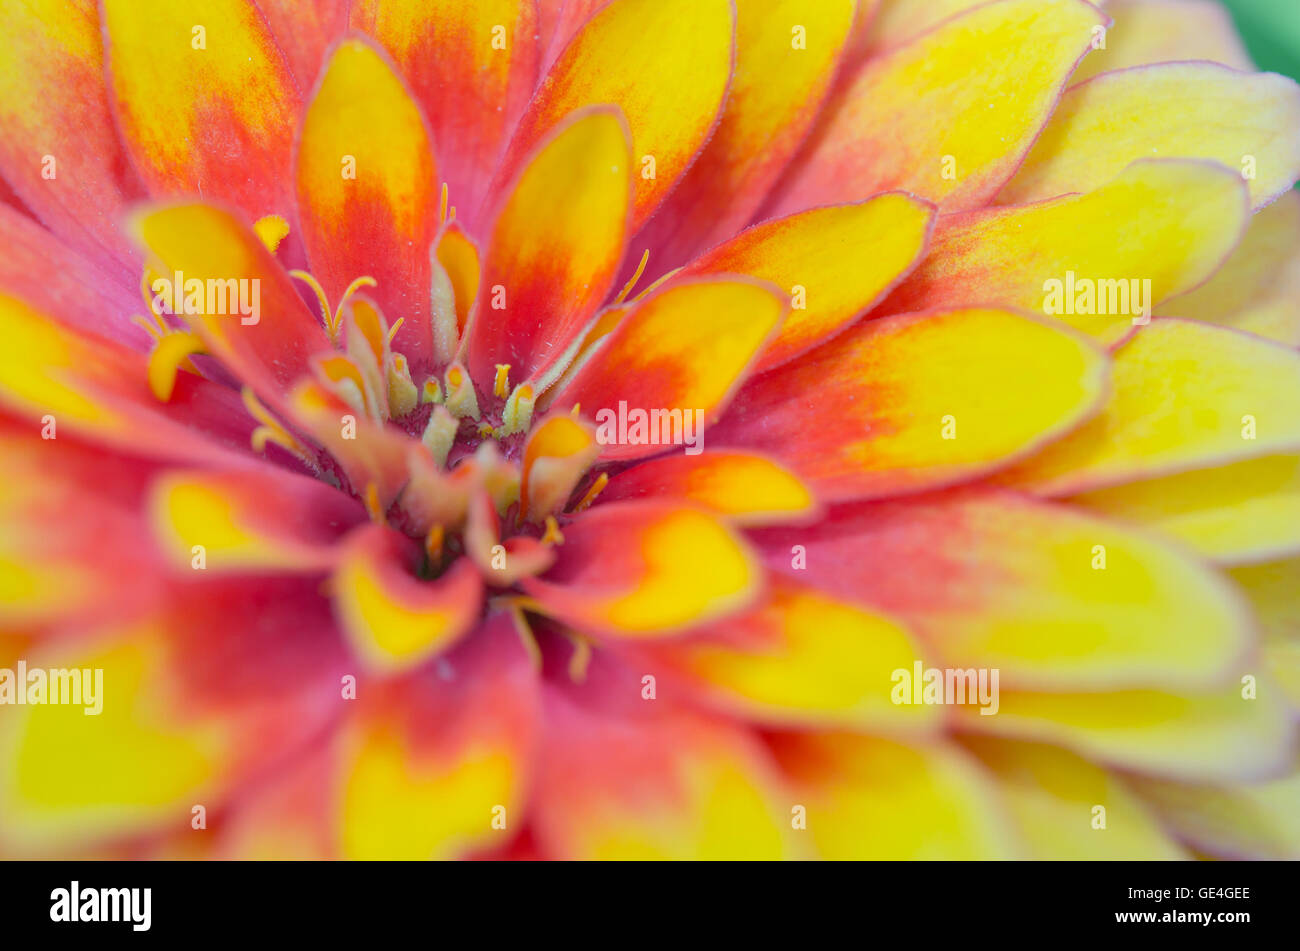 Pink And Yellow Hybrid Aster Flower Science Name Callistephus Stock